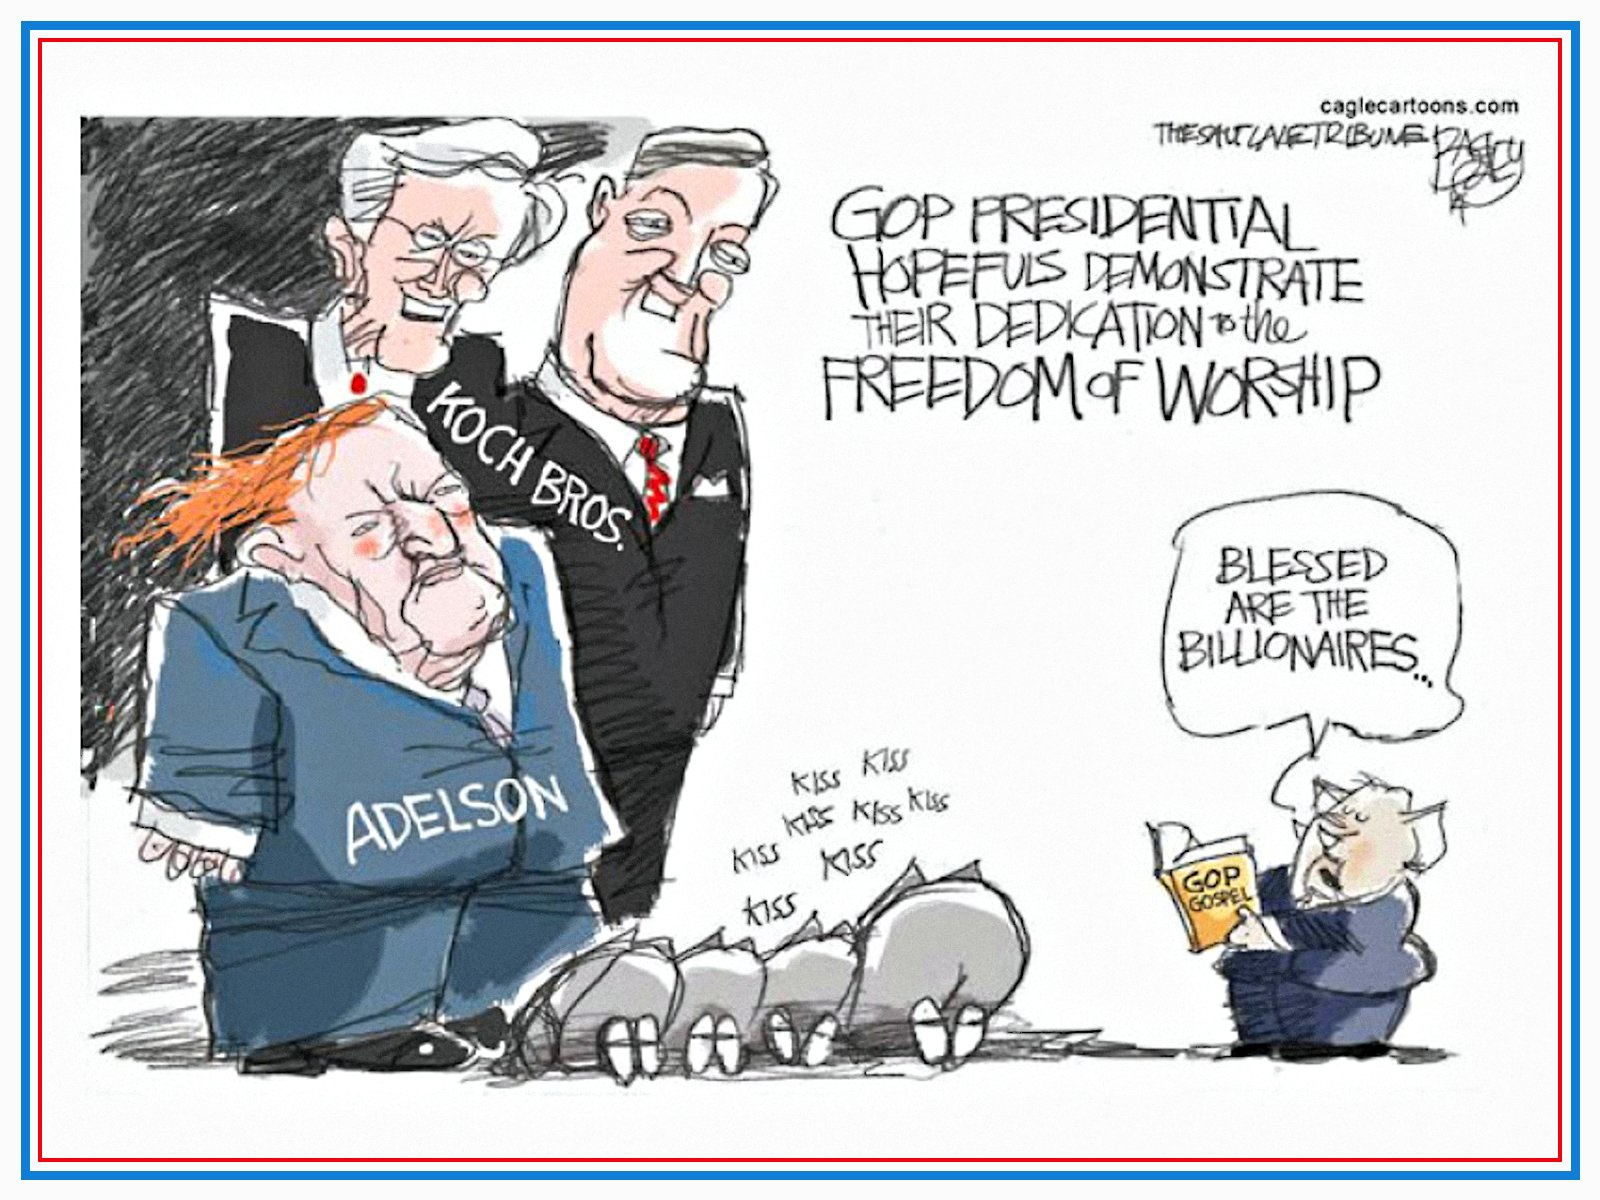 00 Pat Bagley GOP Freedom of Worship 2014 311215